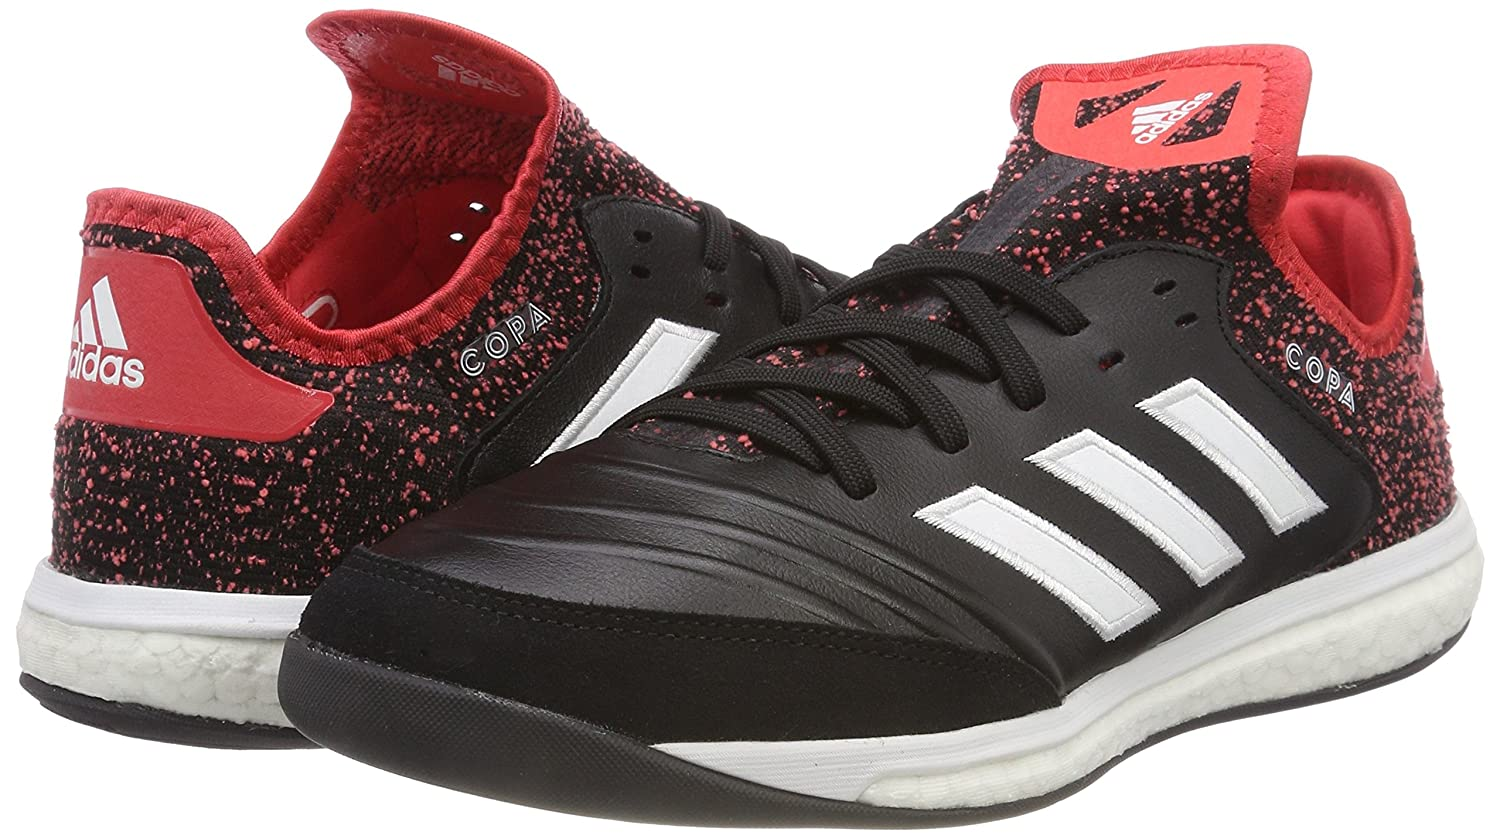 adidas Copa Tango 18.1 TR Chaussures de Football Homme